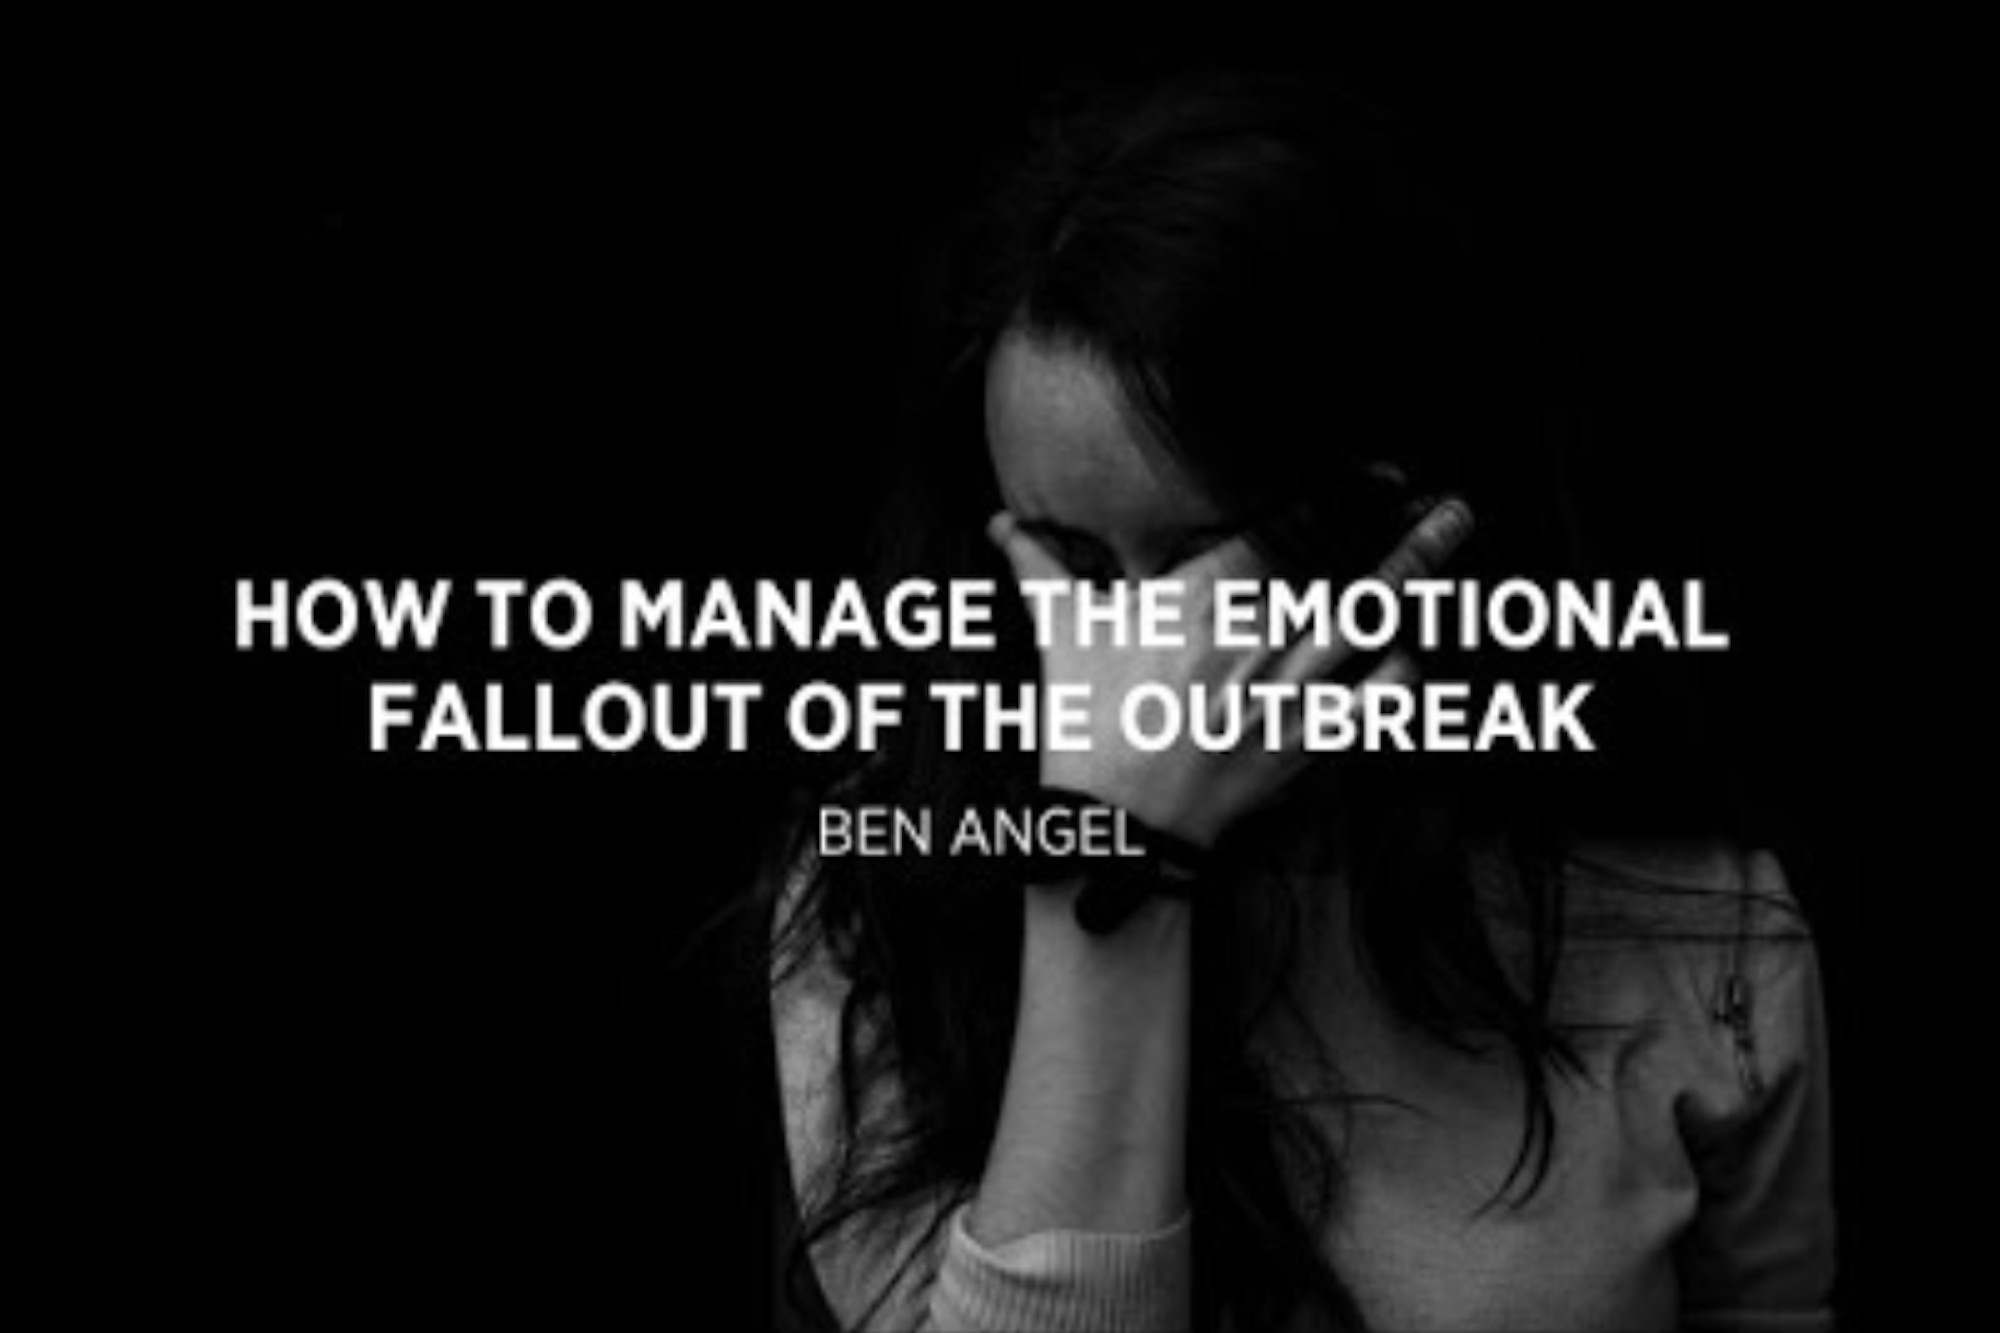 How to Manage the Emotional Fallout of the Outbreak